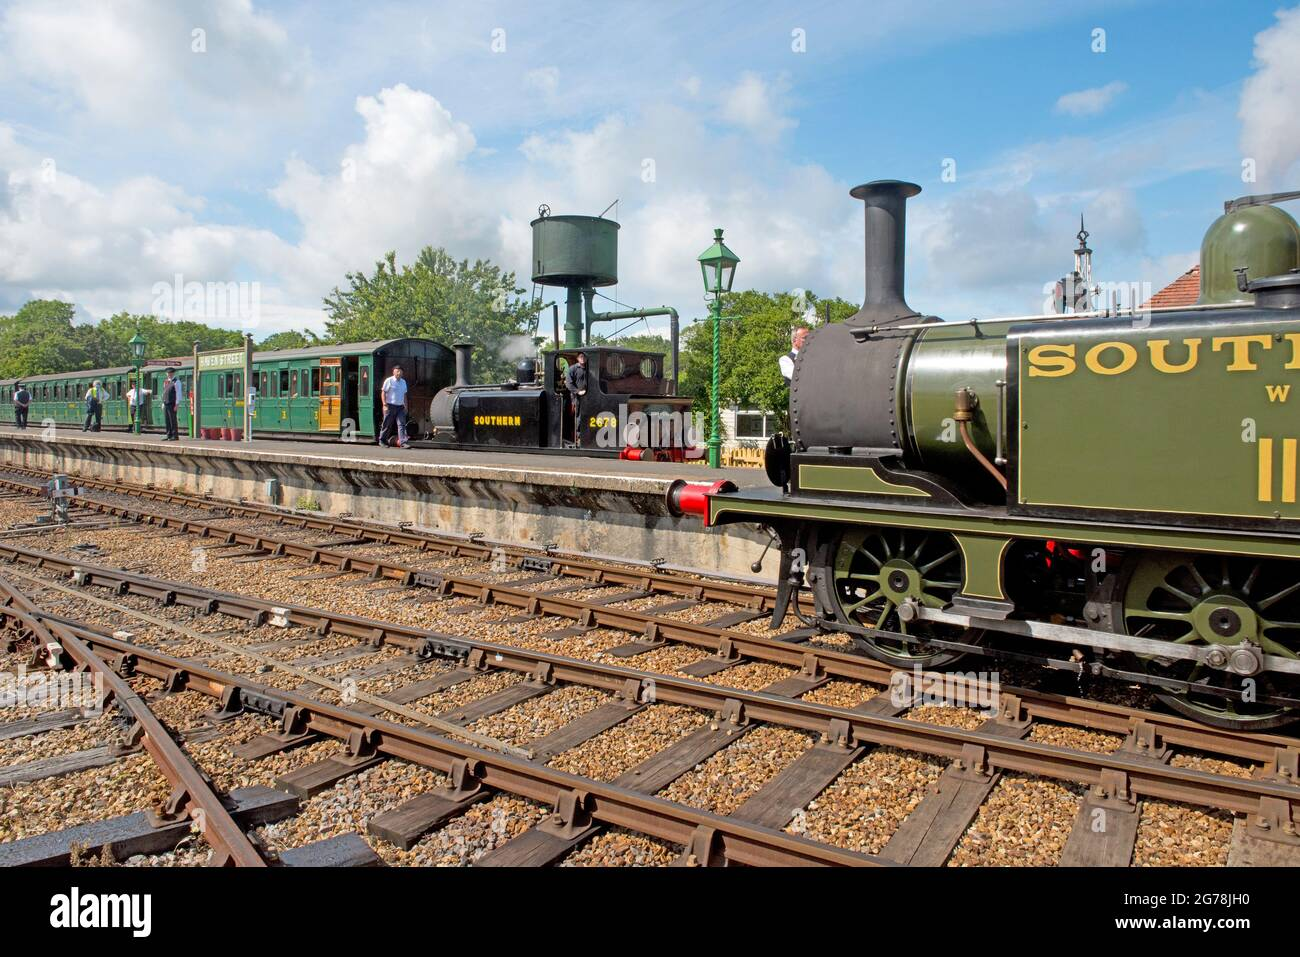 A1X 'Terrier' locomotive brings a train into Havenstreet station on the Isle of Wight Steam Railway Stock Photo